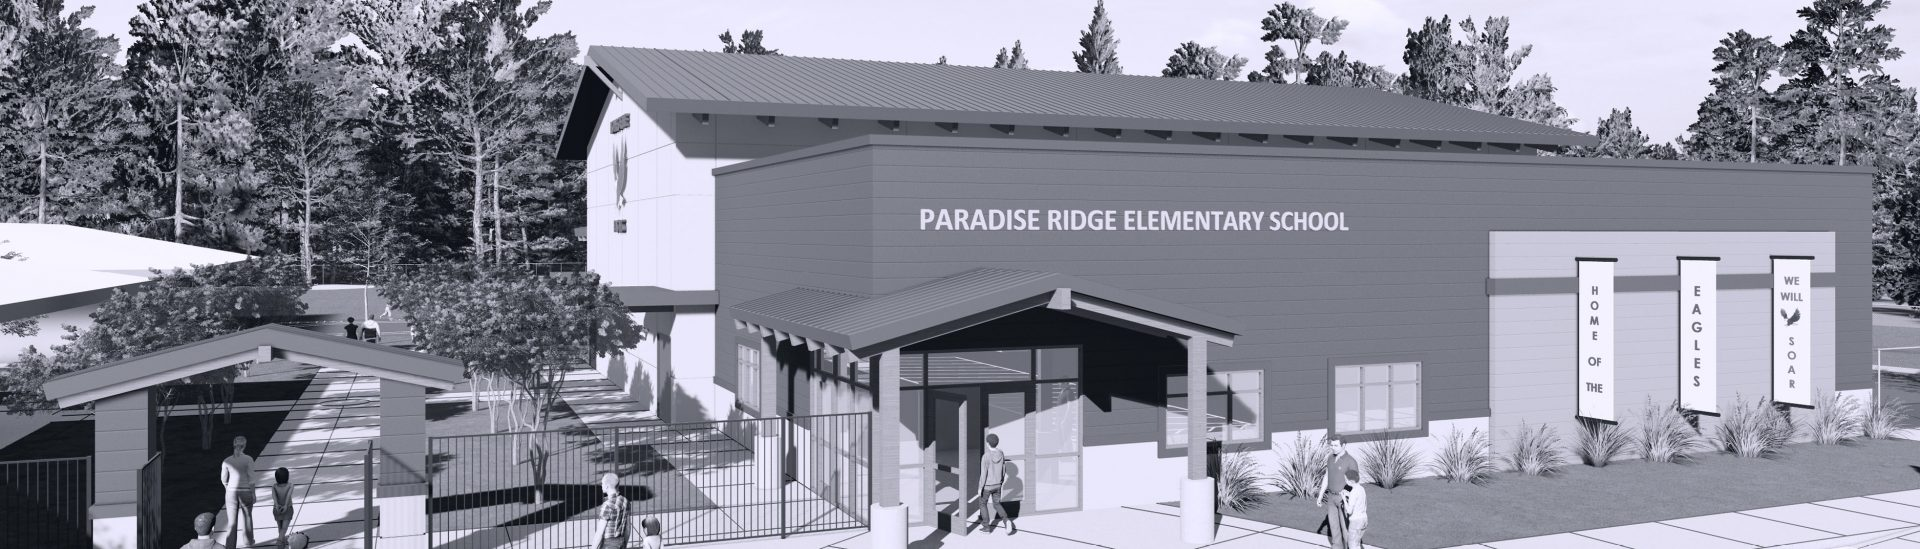 12 Months of Architecture: Facility Hardship Funding for Public Education Projects